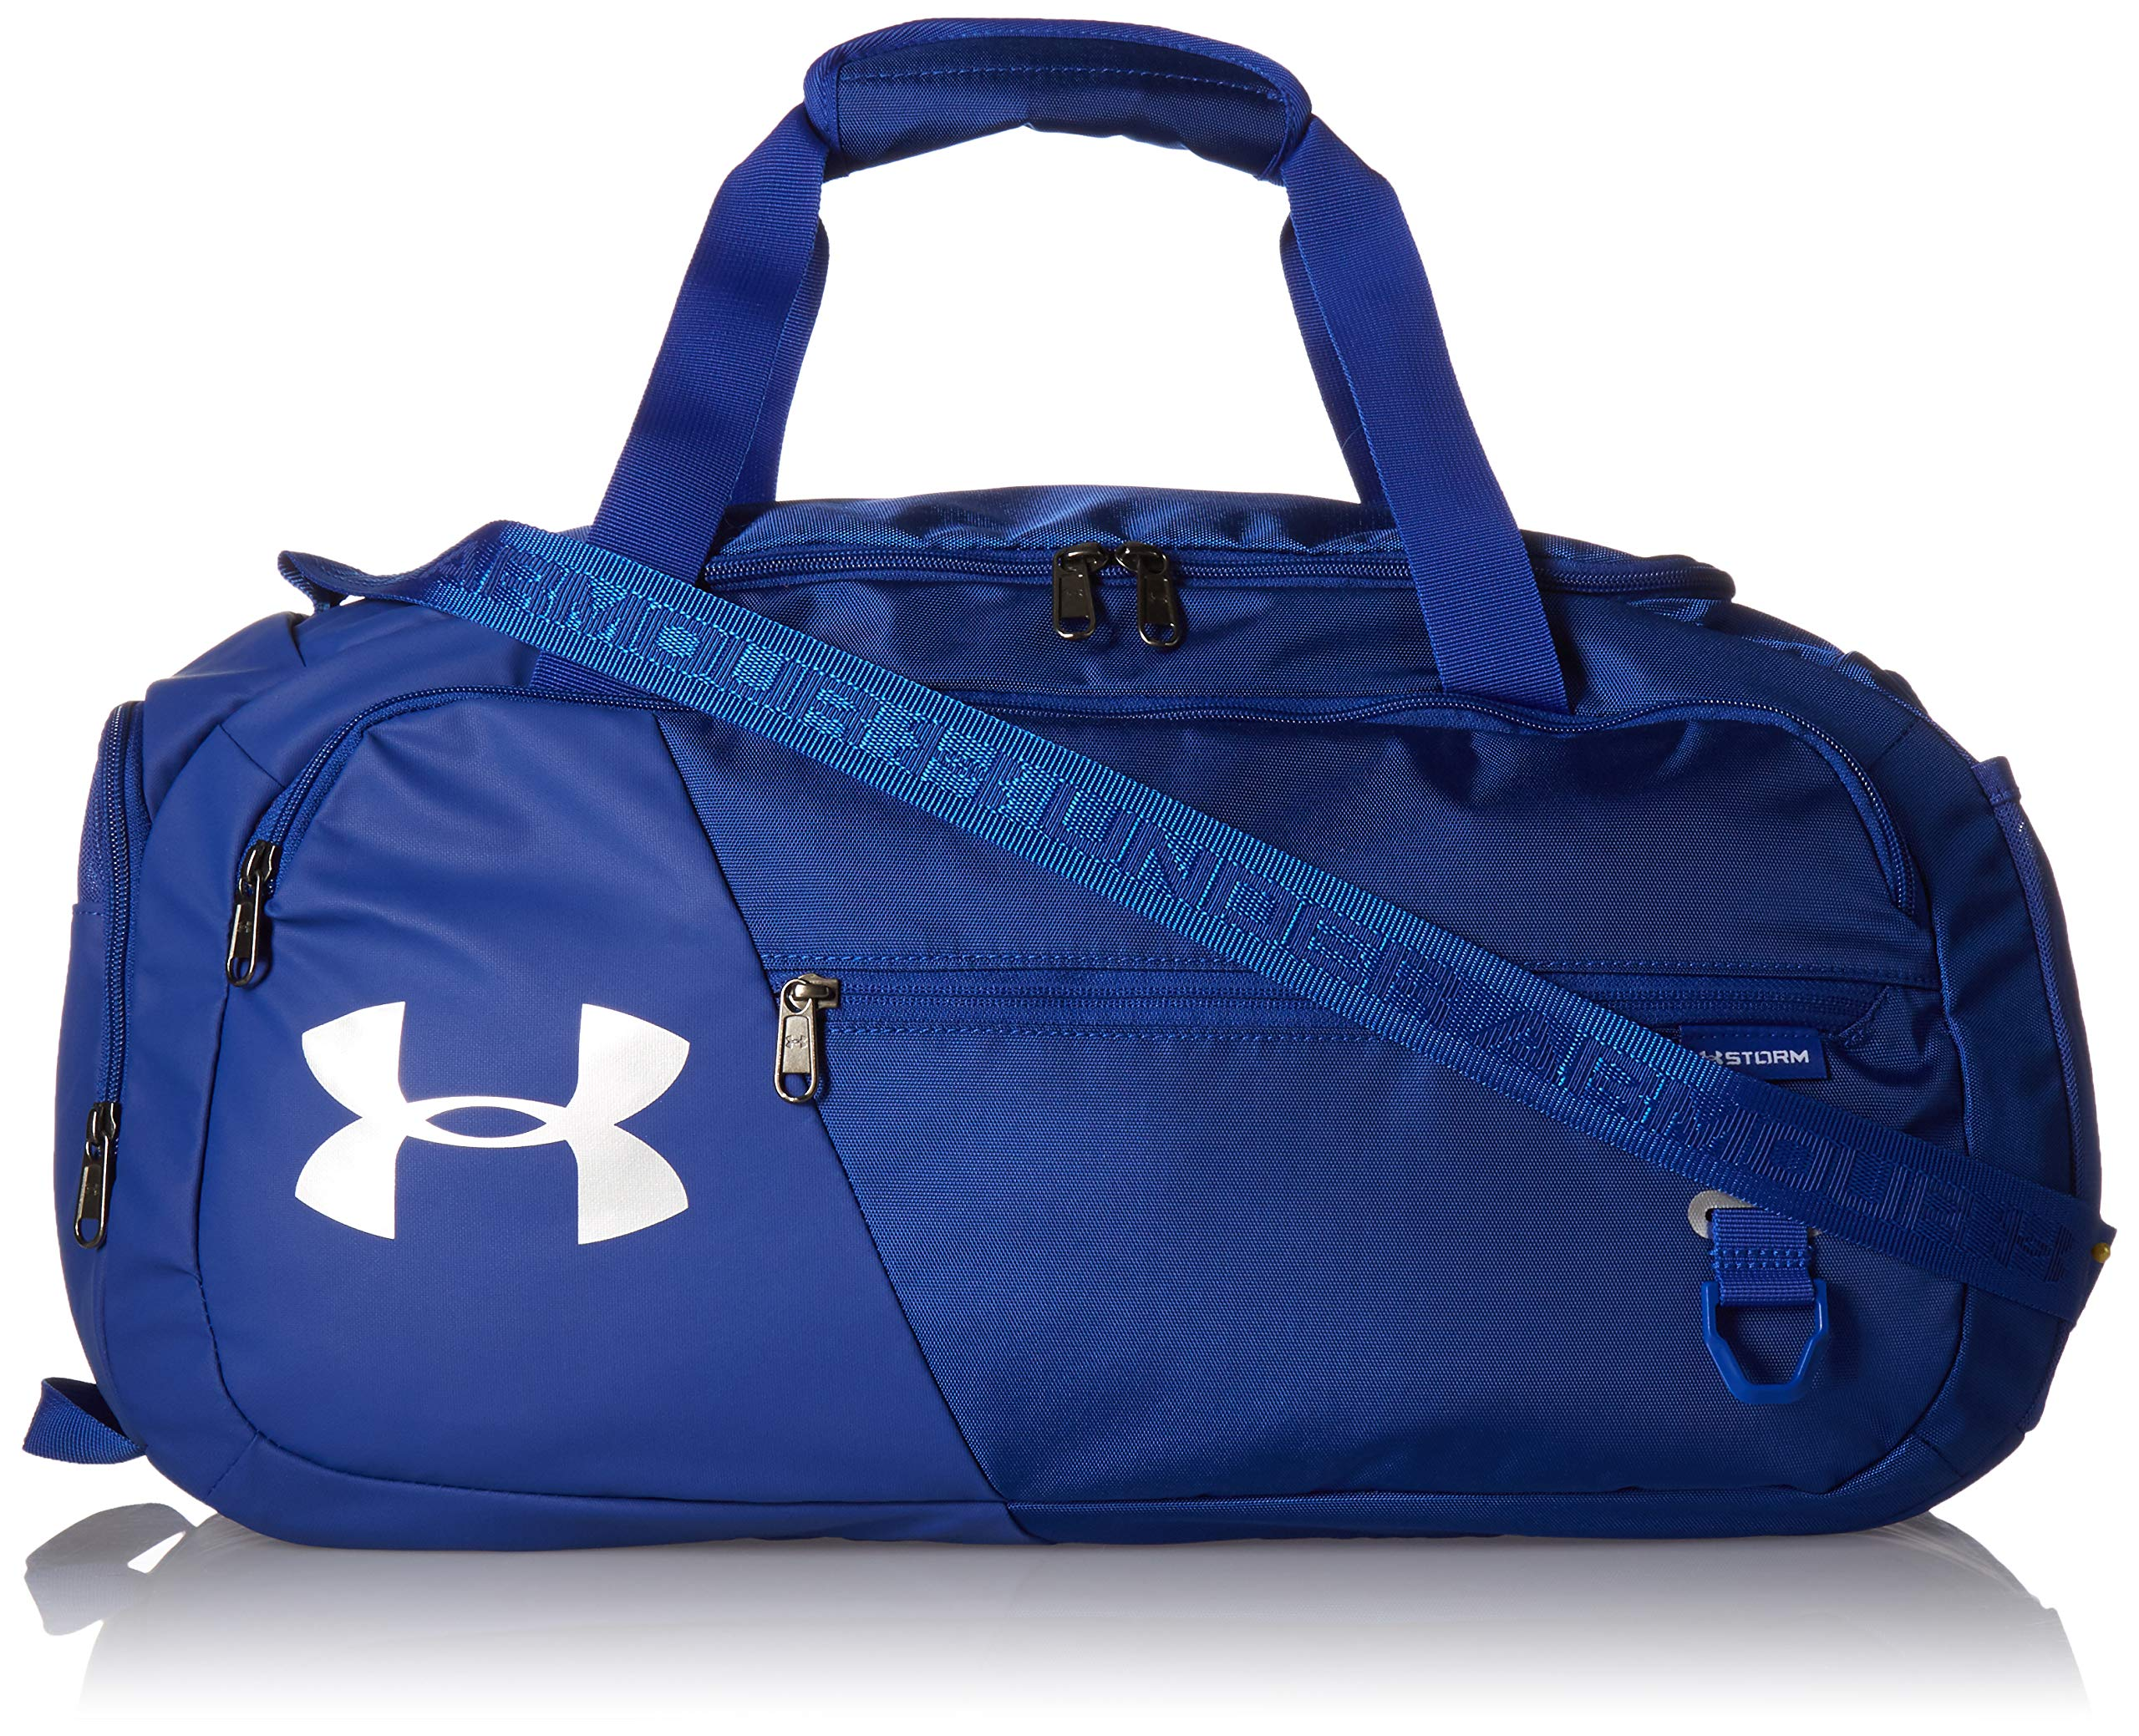 Under Armour Undeniable Duffle 4.0, Royal/Silver, Small